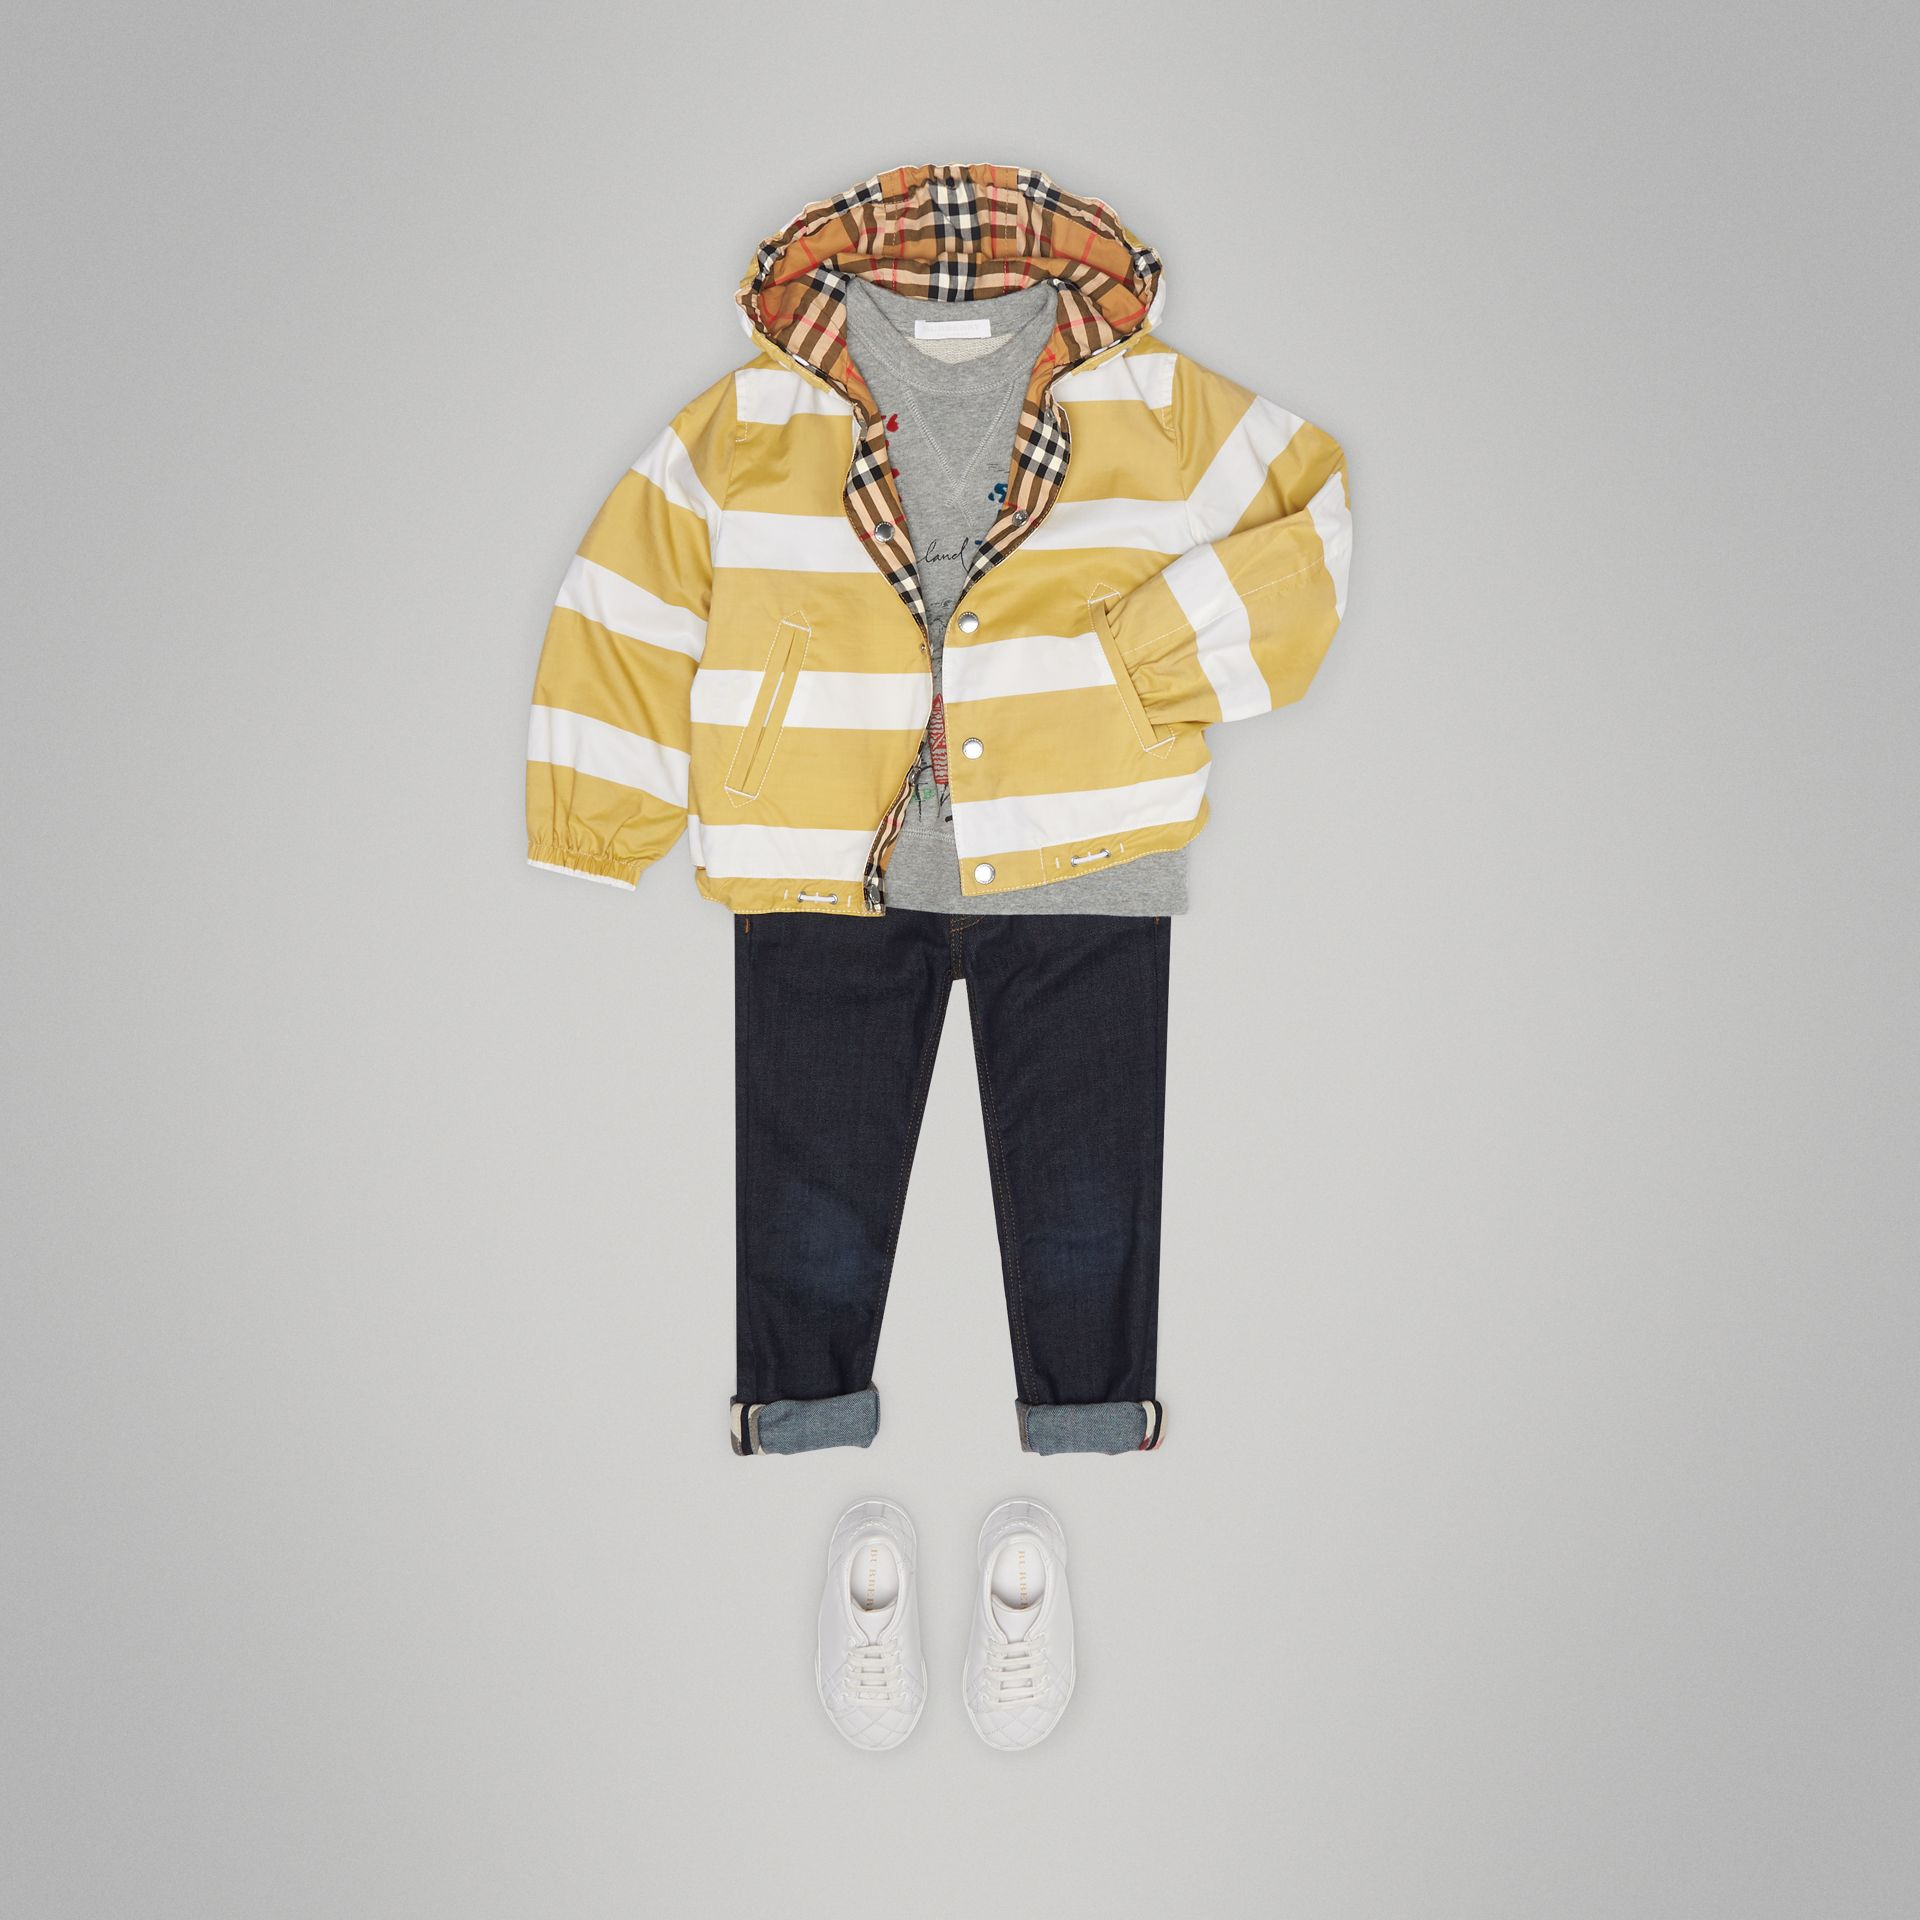 Reversible Stripe and Vintage Check Cotton Jacket in Larch Yellow/whte | Burberry - gallery image 2